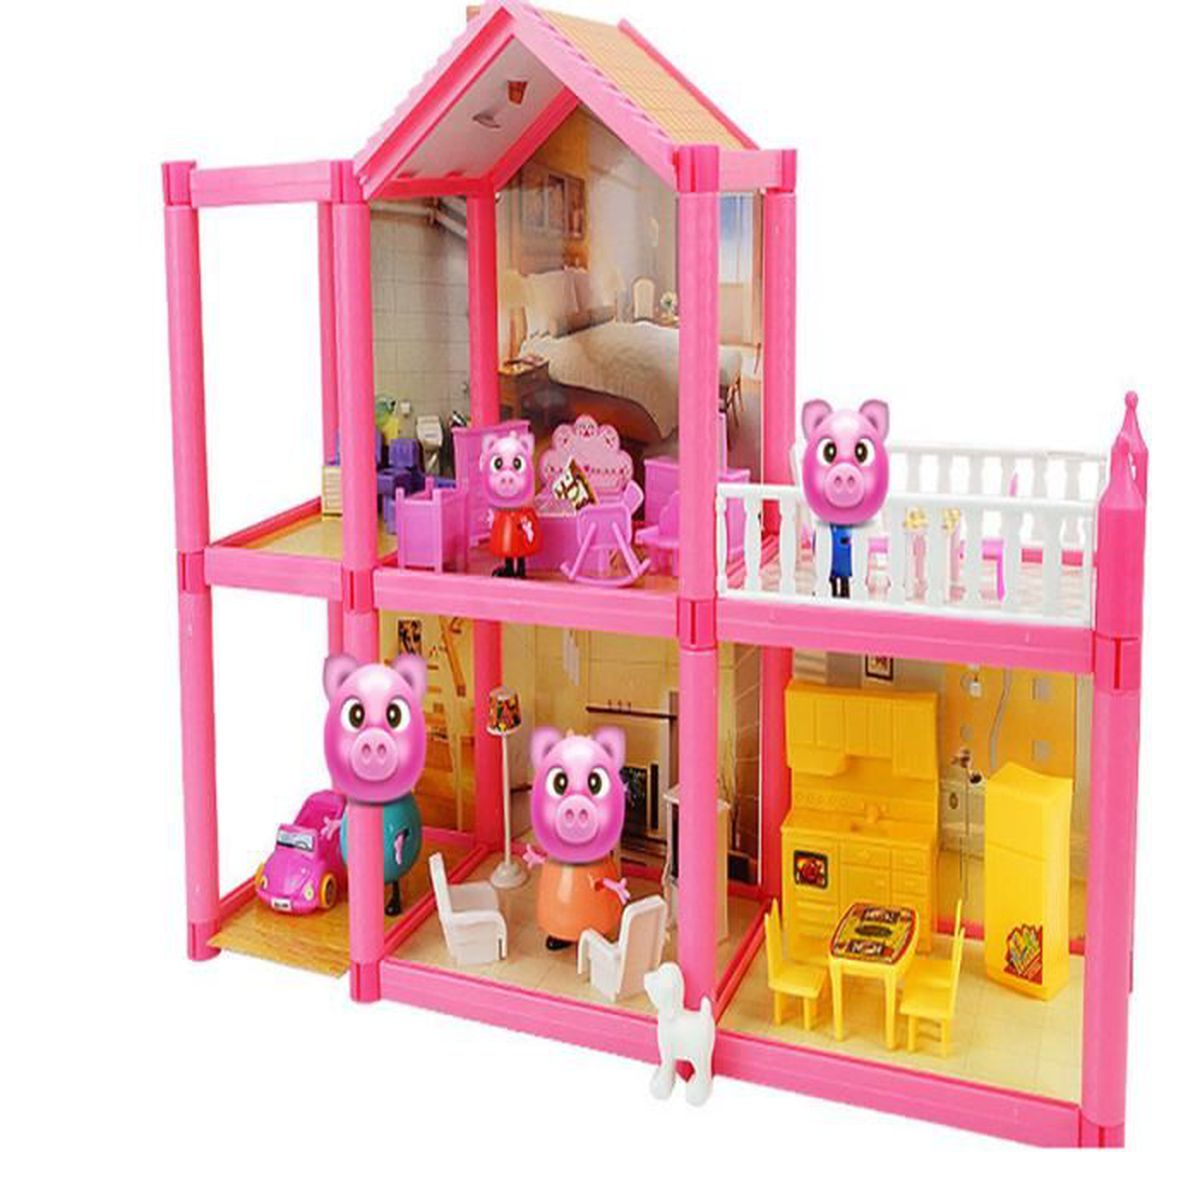 peppa pig princesse suite maison c collection achat vente maison m nage cdiscount. Black Bedroom Furniture Sets. Home Design Ideas